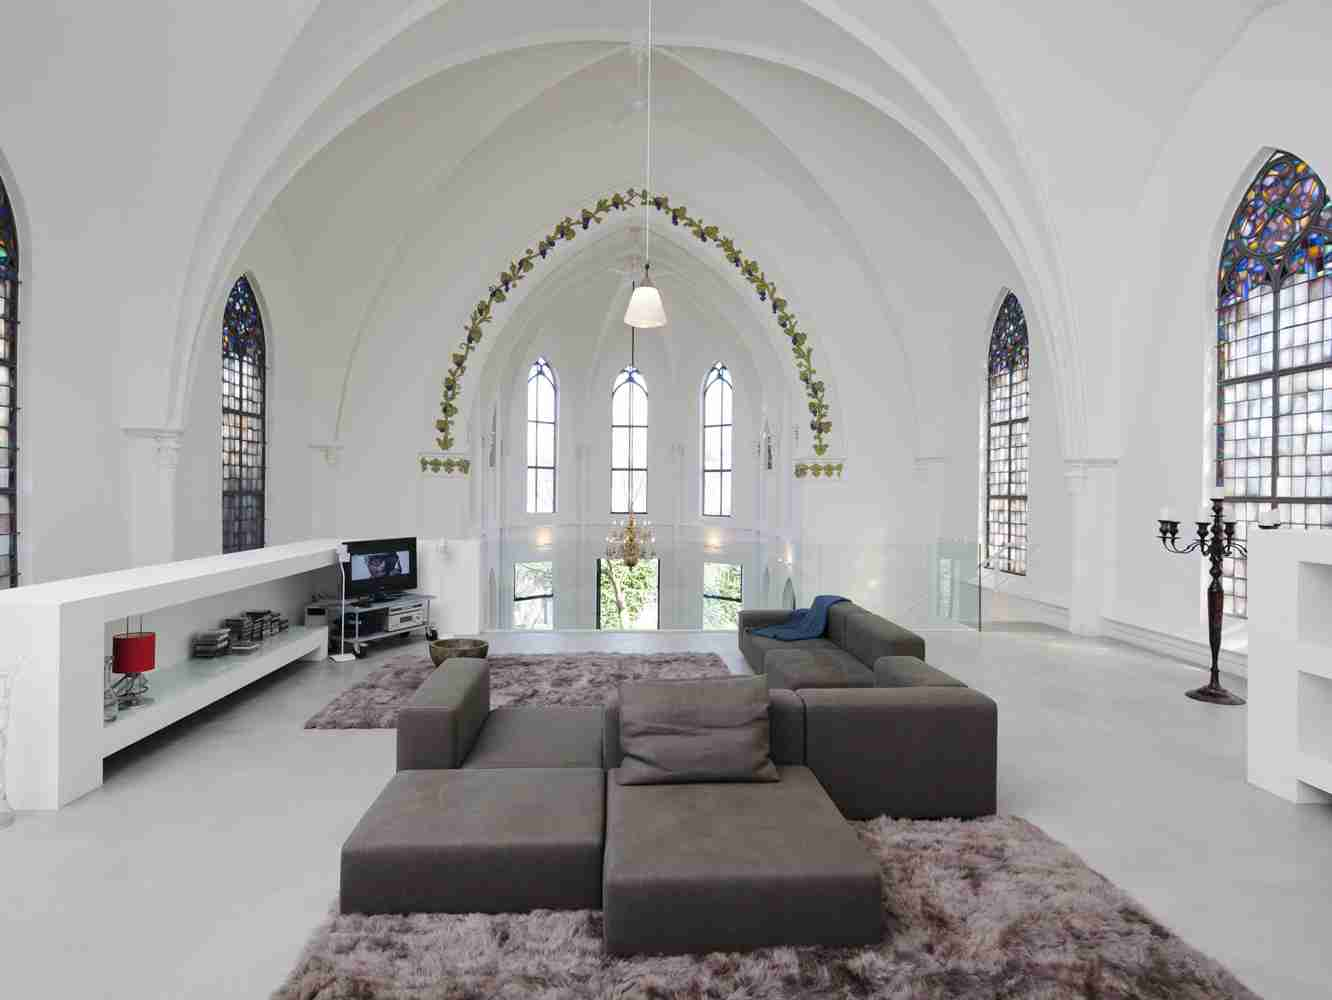 Light domed and arched ceiling of the Arabic styled cottage